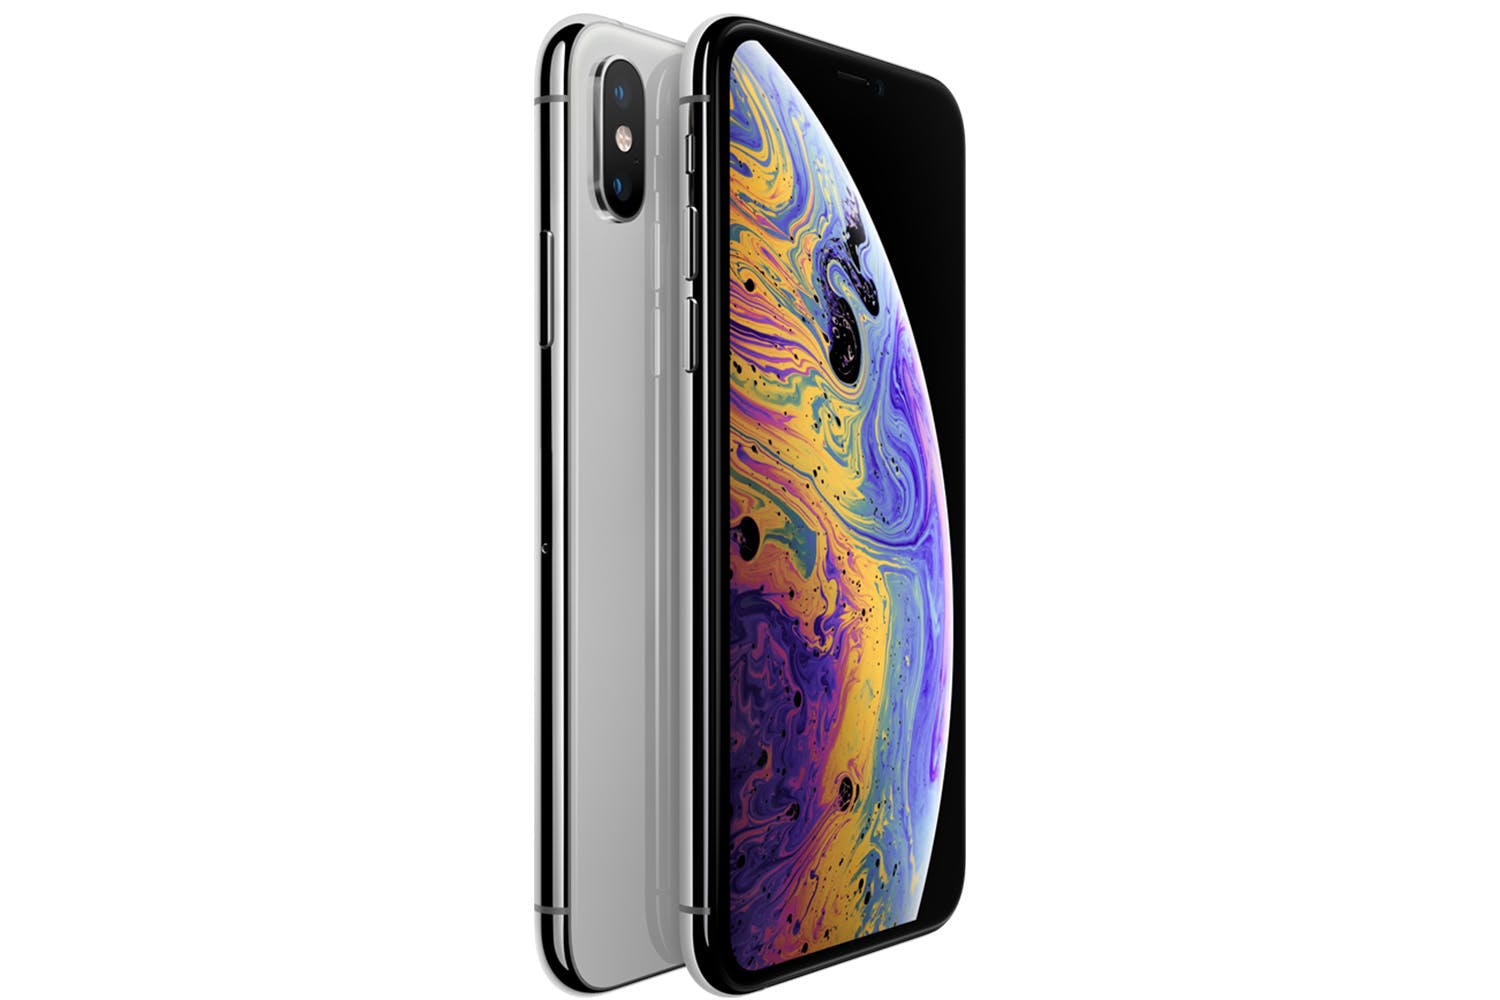 First images of the iPhone XS Max with dual SIM in operation